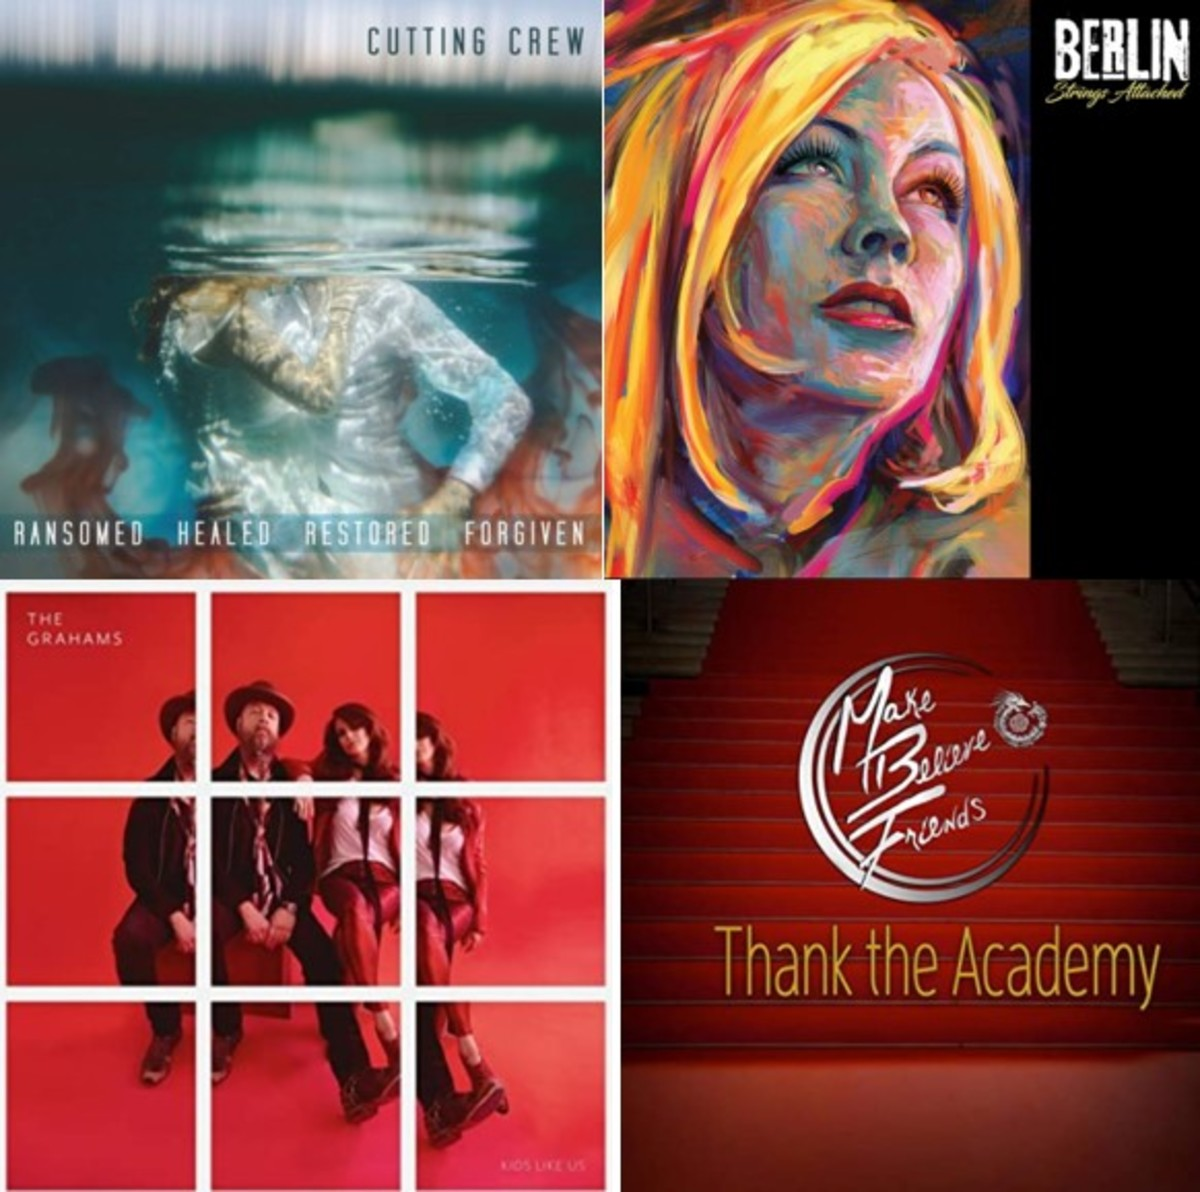 Cutting Crew, Berlin, The Grahams, and Make Believe Friends